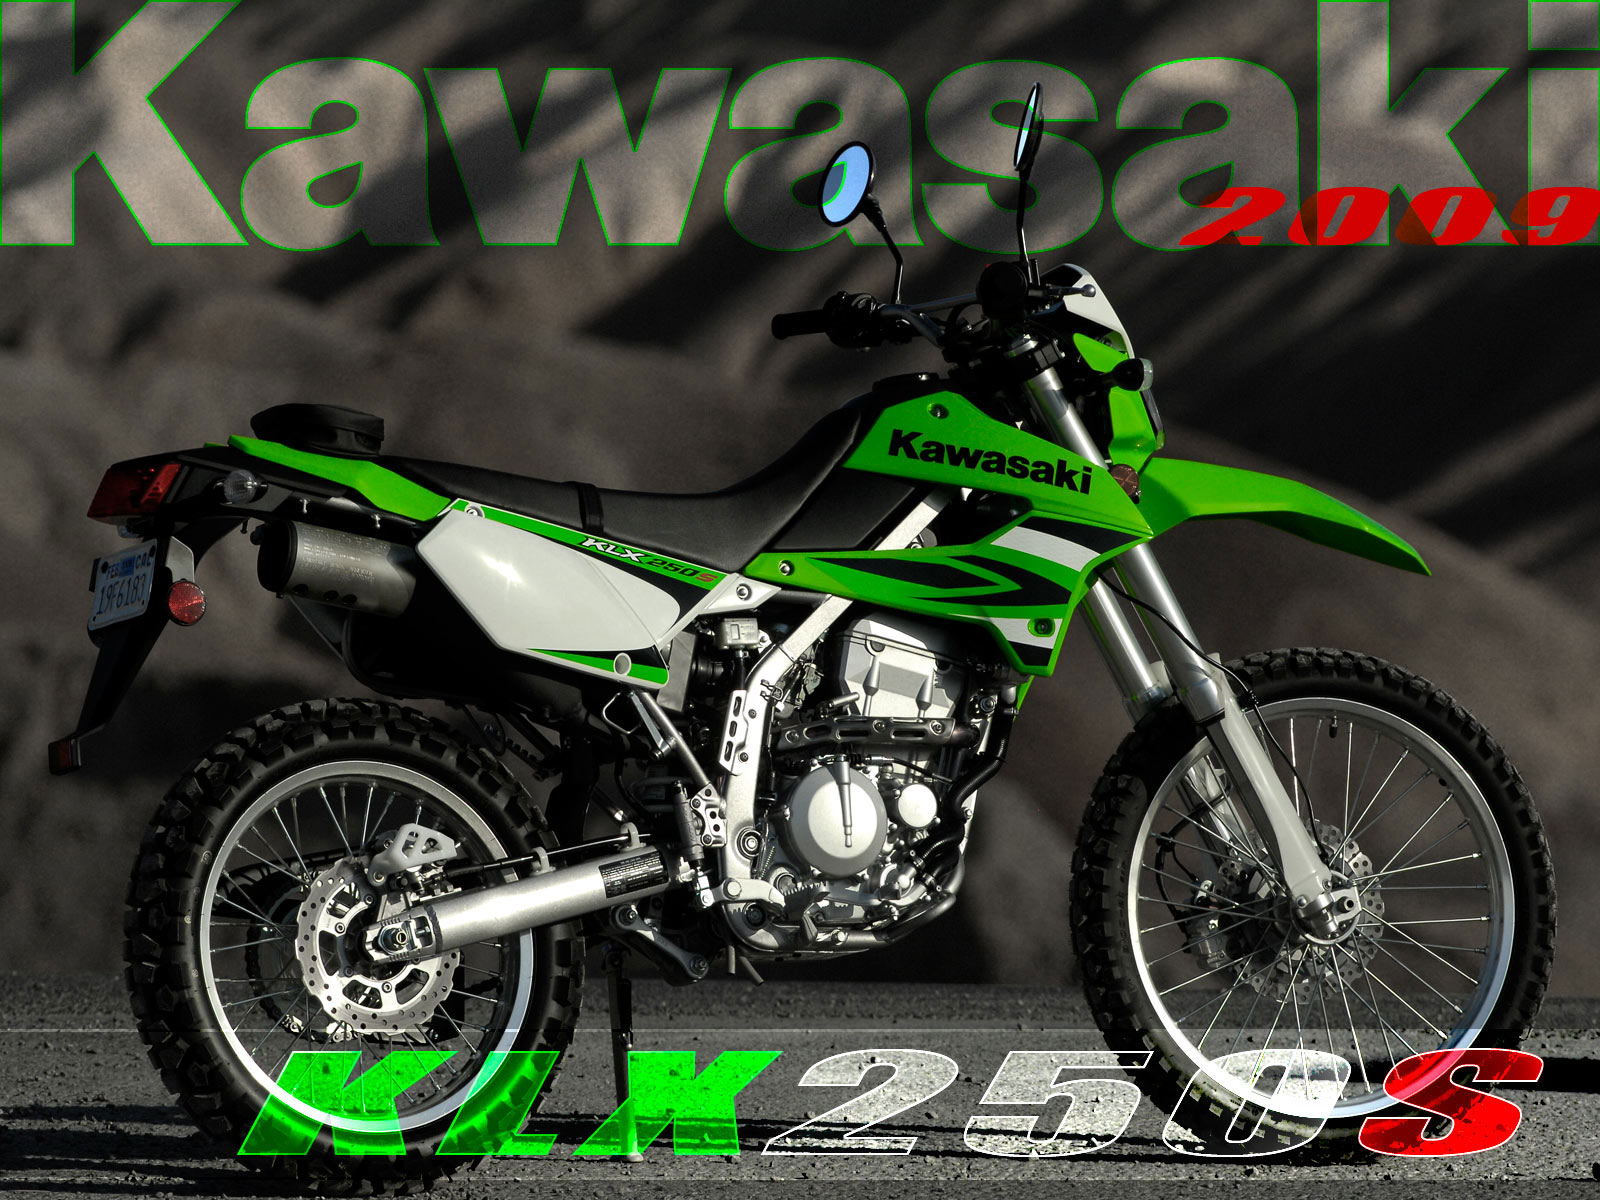 Kawasaki KLX 250 S 2007 wallpapers #142463